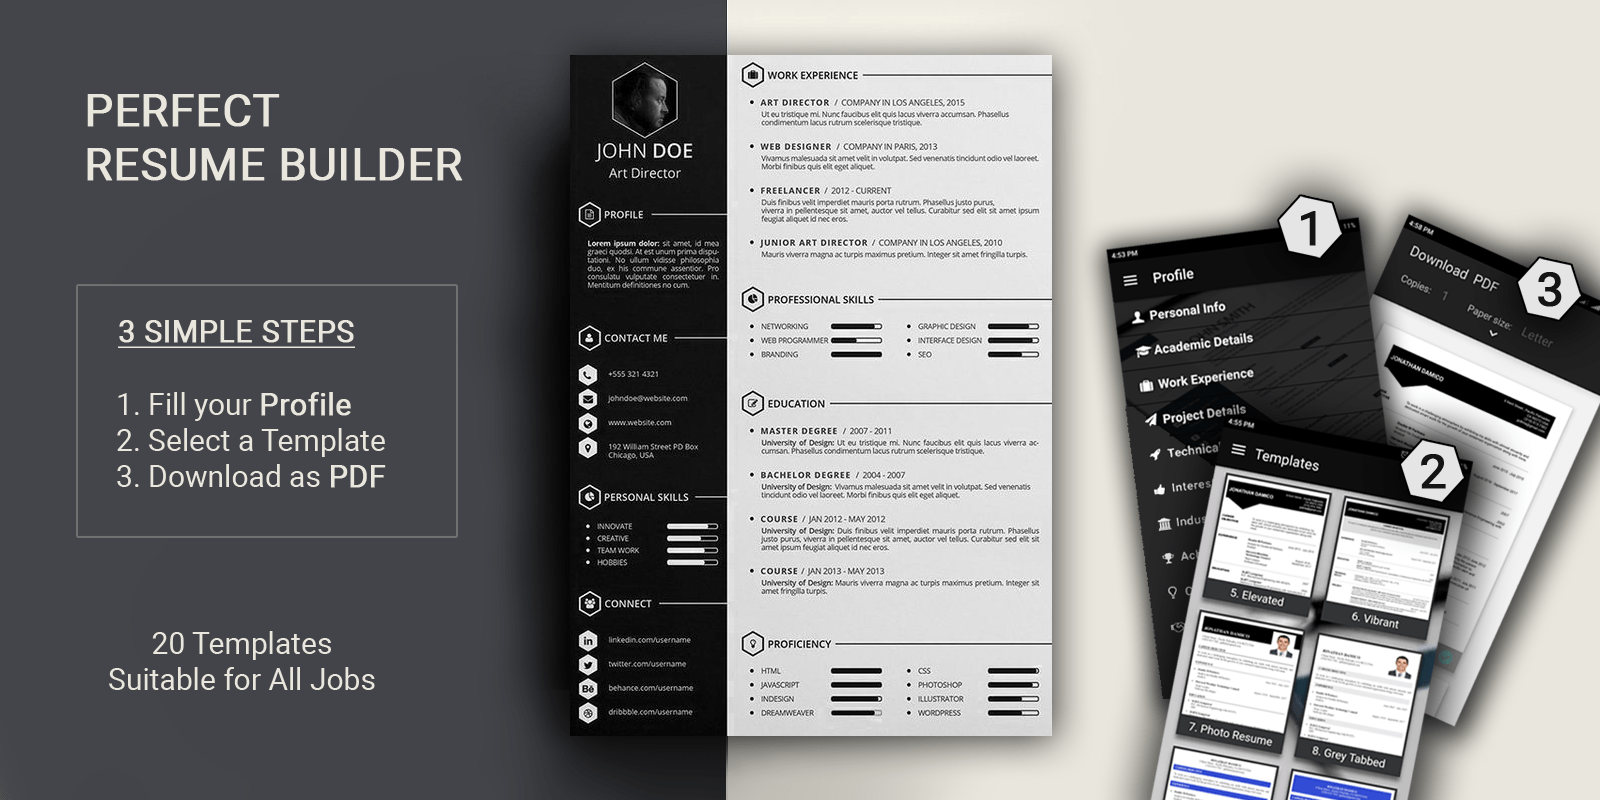 Resume Builder 2018   30  Resume Templates Free Resume Builder with 30  Resume templates suitable for various jobs   This is the first resume app with more resume formats